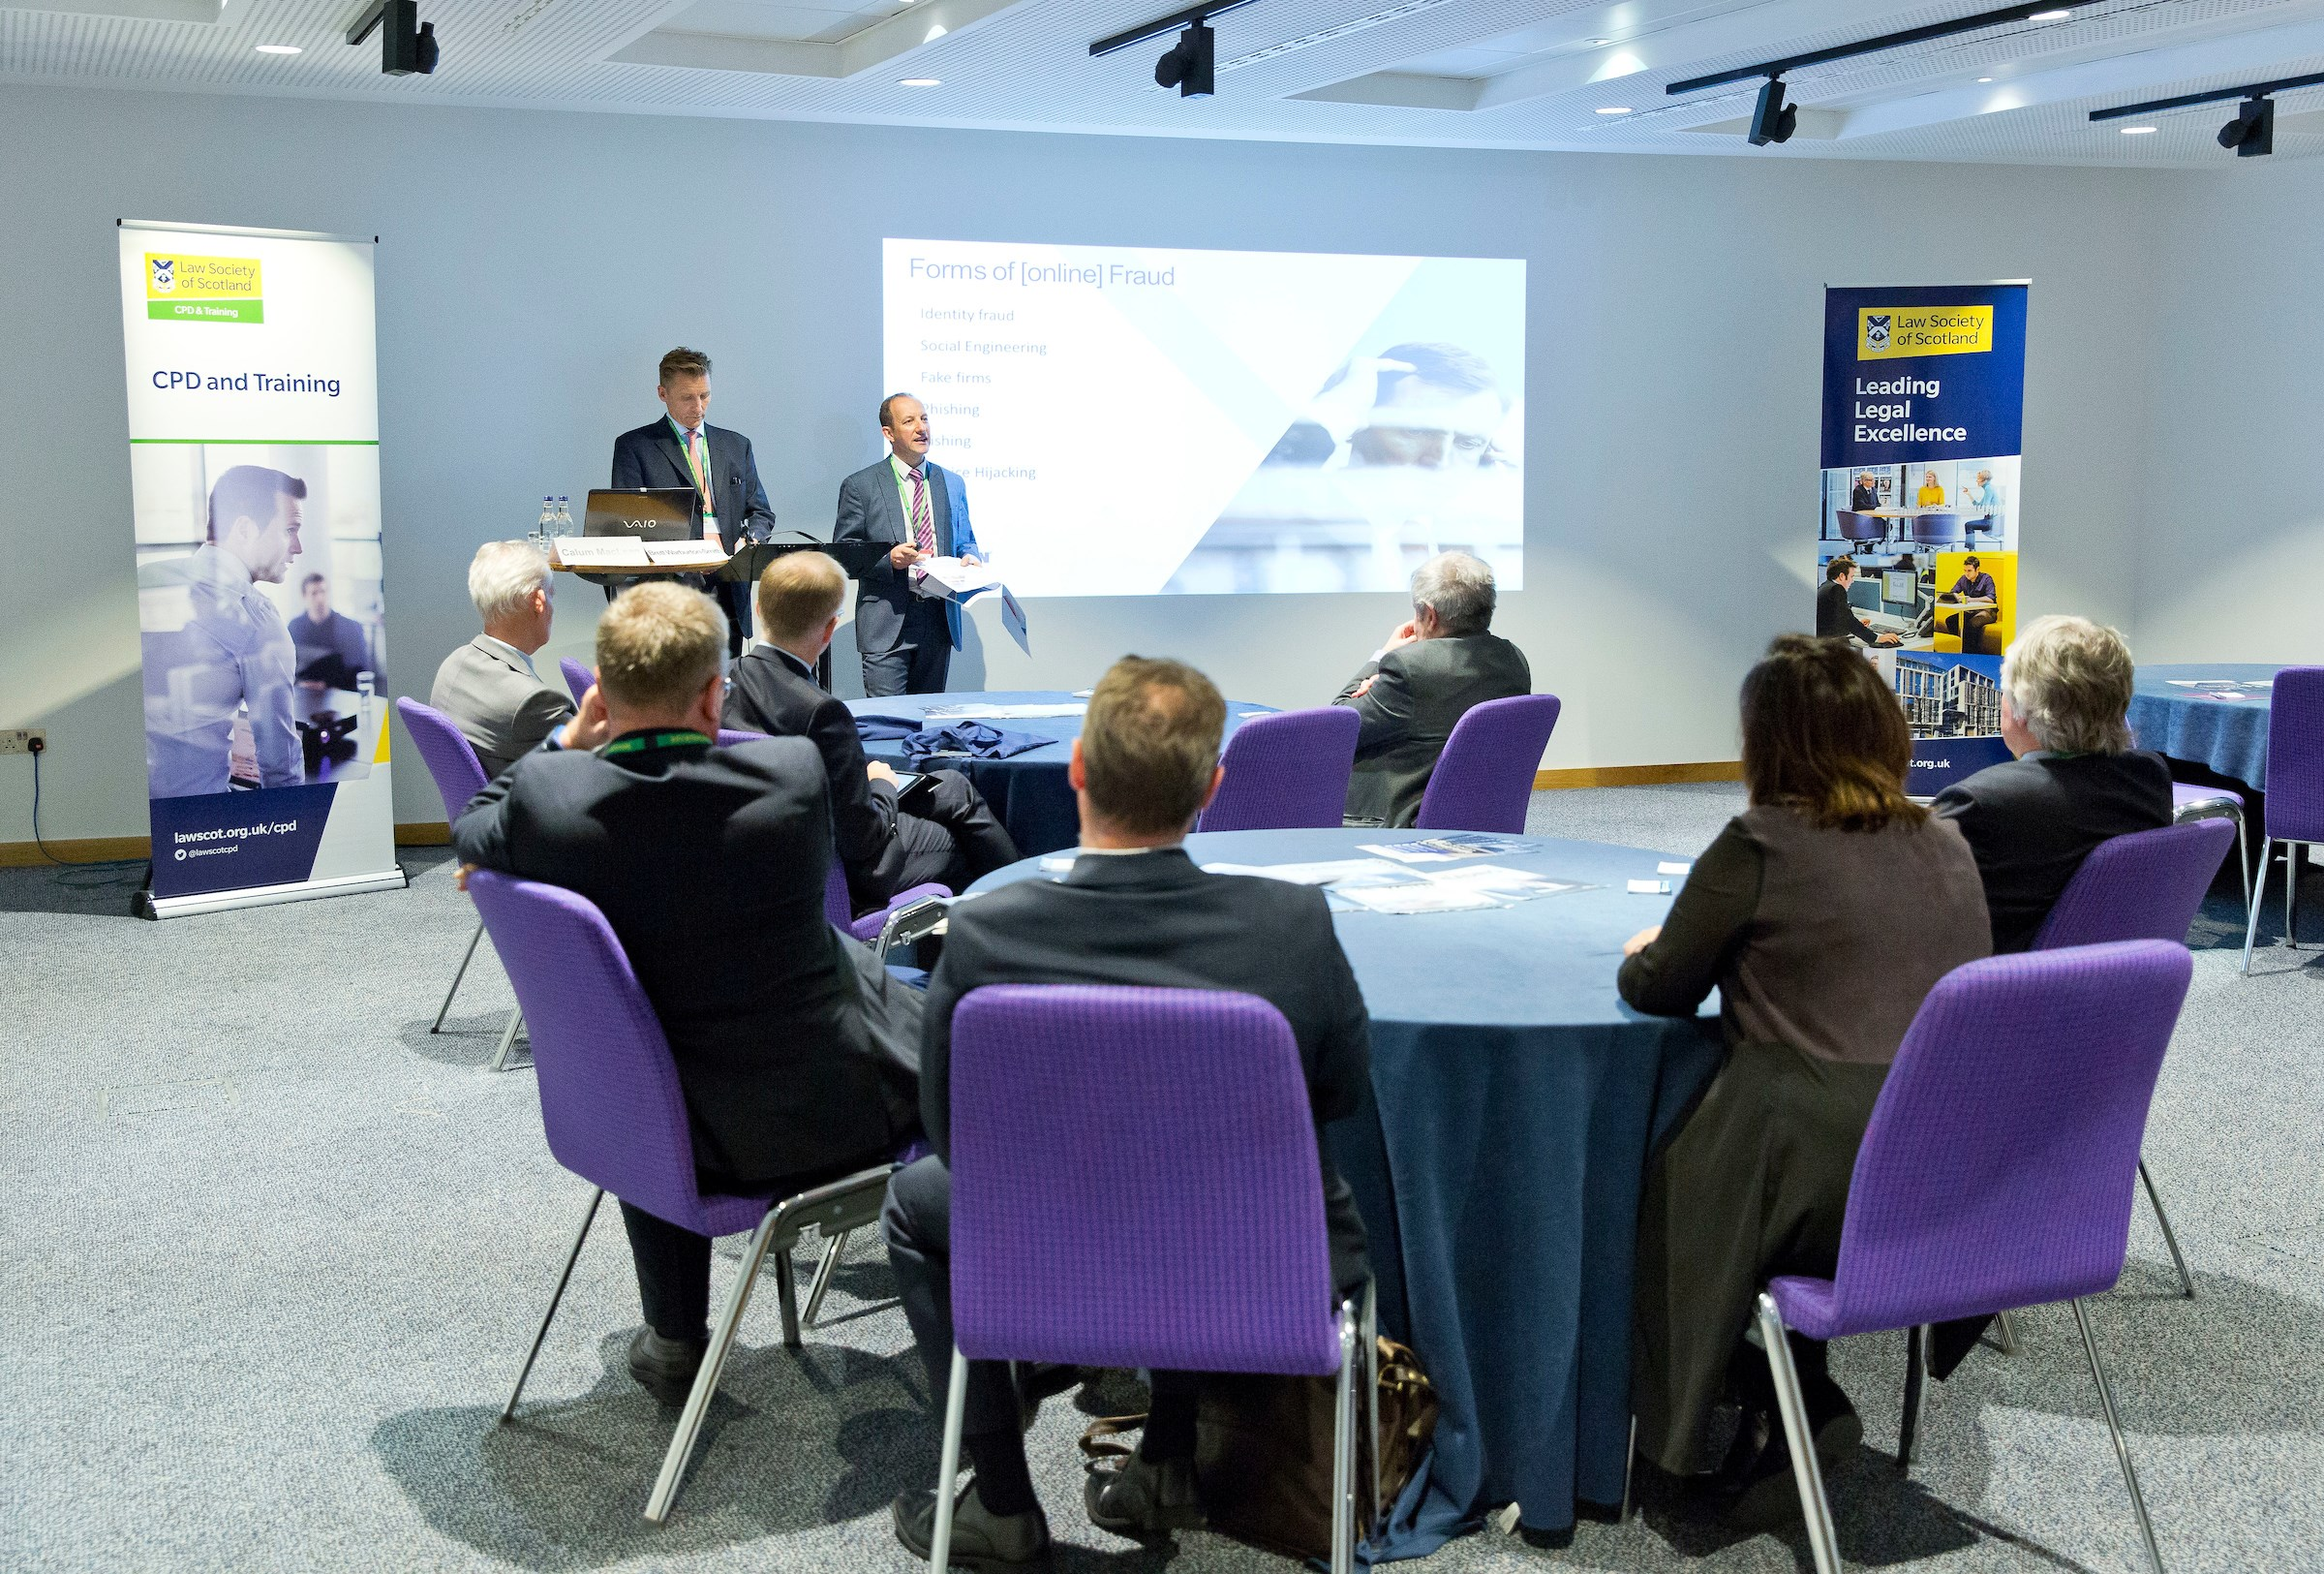 Brett Warburton-Smith and Calum MacLean from Lockton talk cyber security in a fringe session